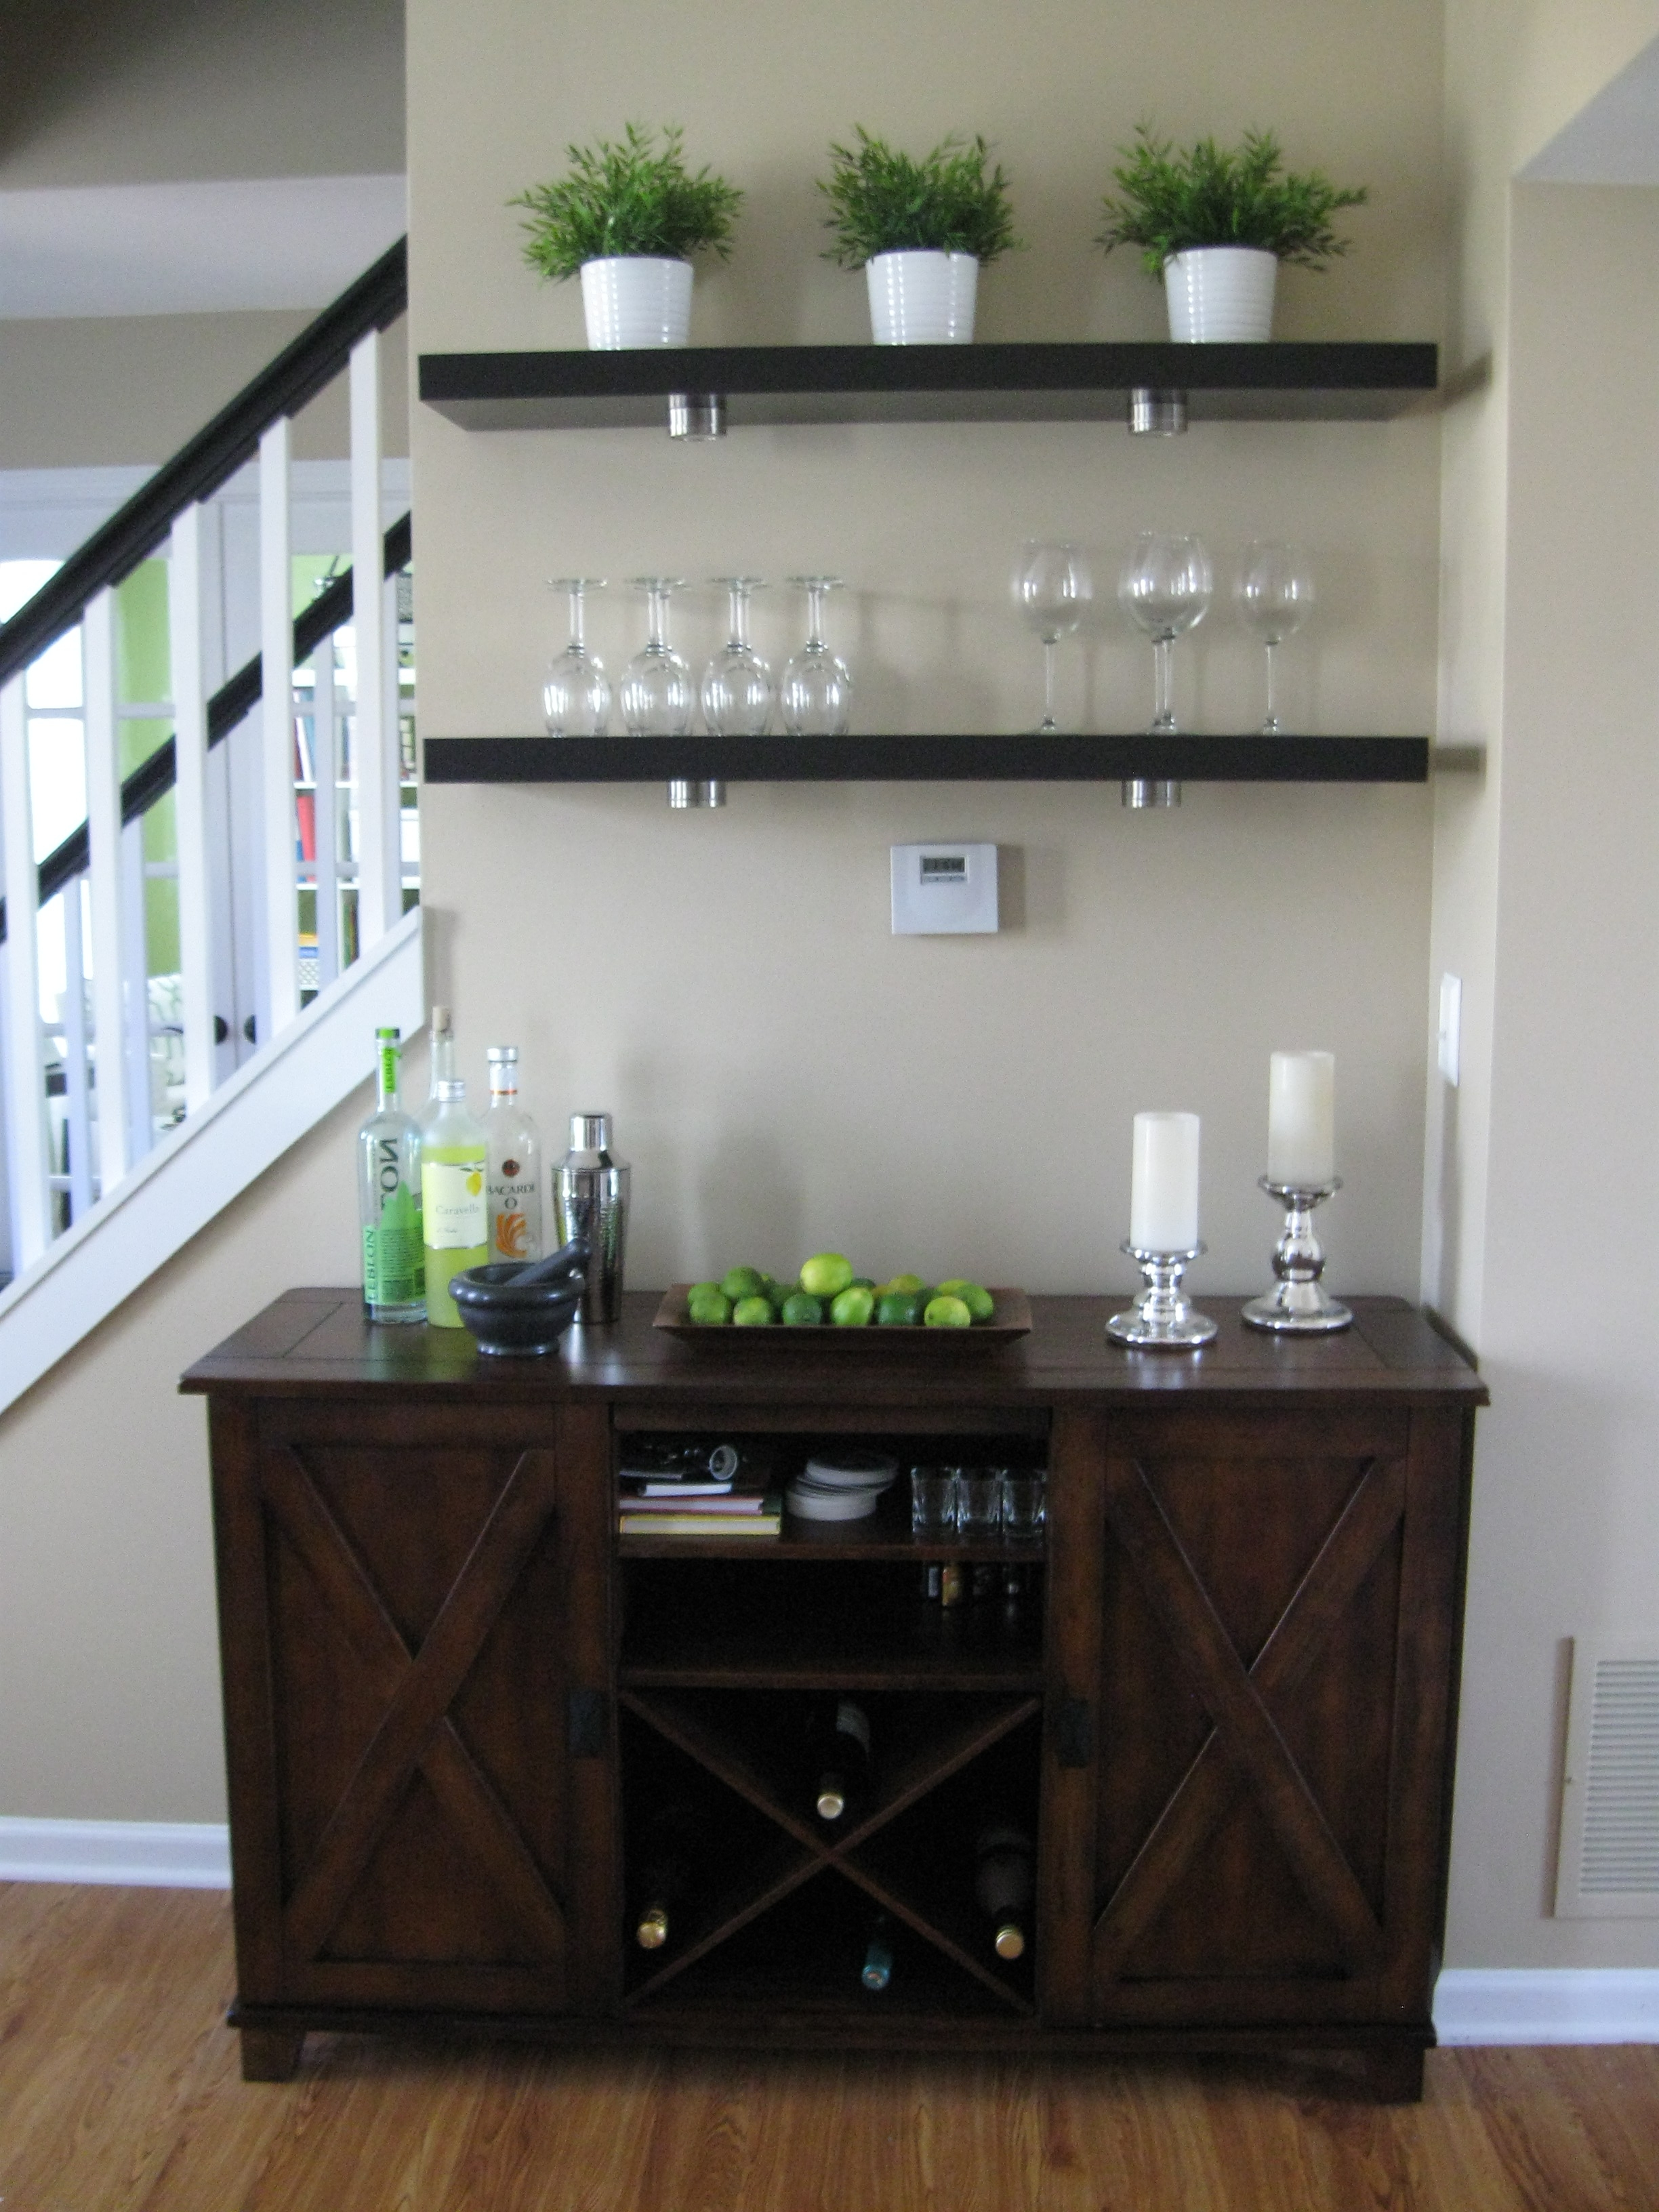 Verona Buffet Ikea Lack Shelves W Wine Glass Storage Underneath In Glass Shelves For Bar Area (View 12 of 12)